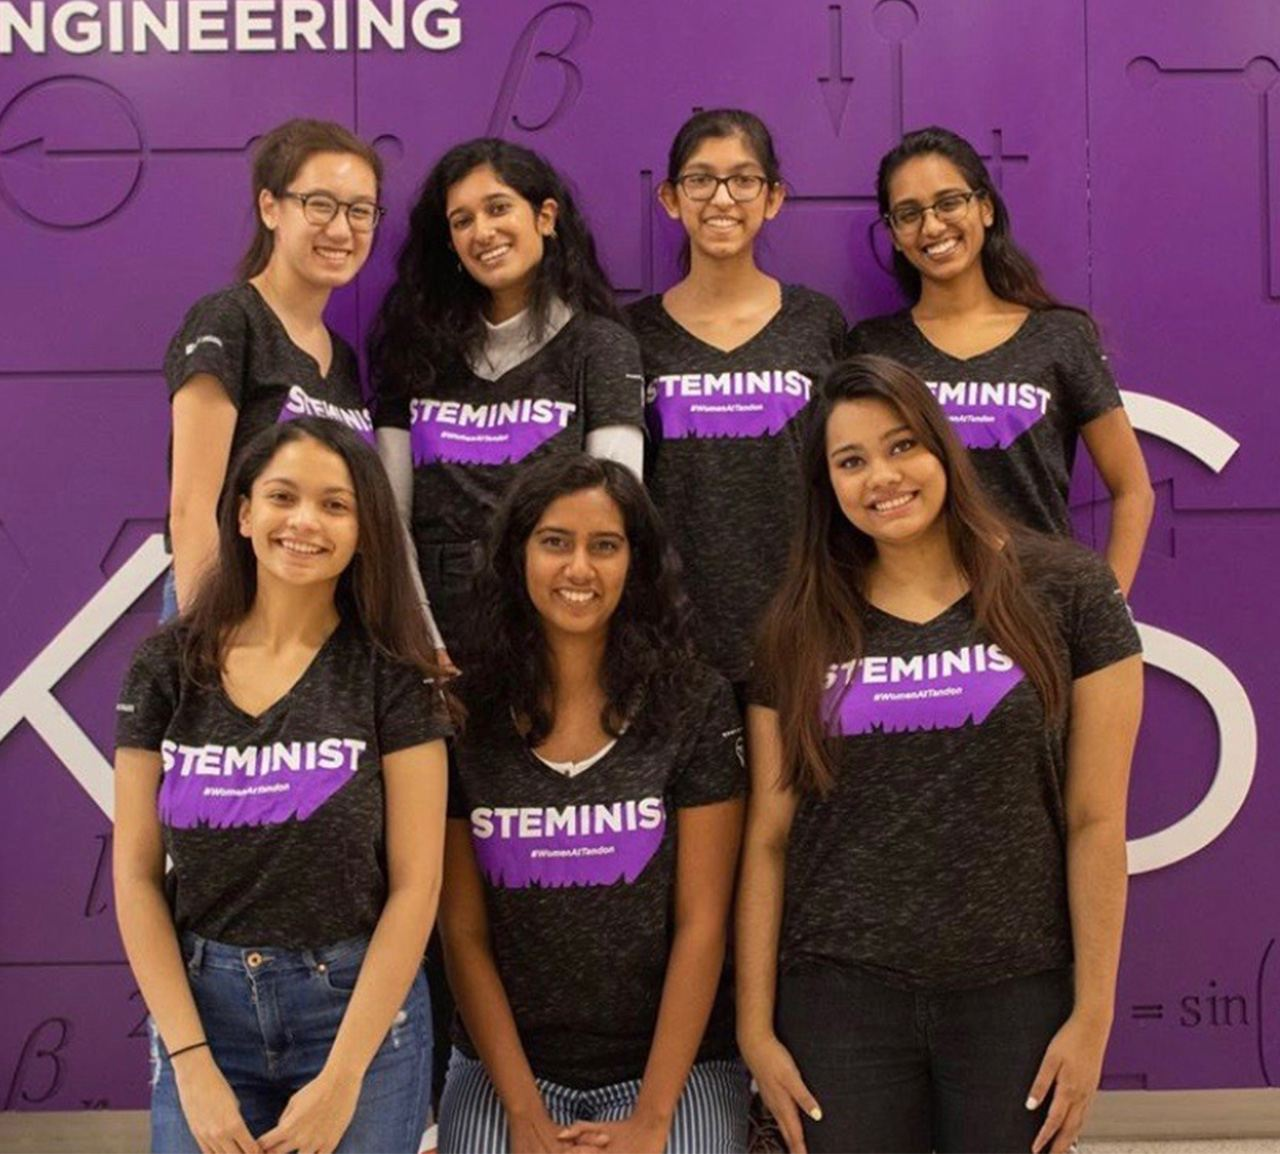 A group of students wearing shirts that represent the STEMinist club.